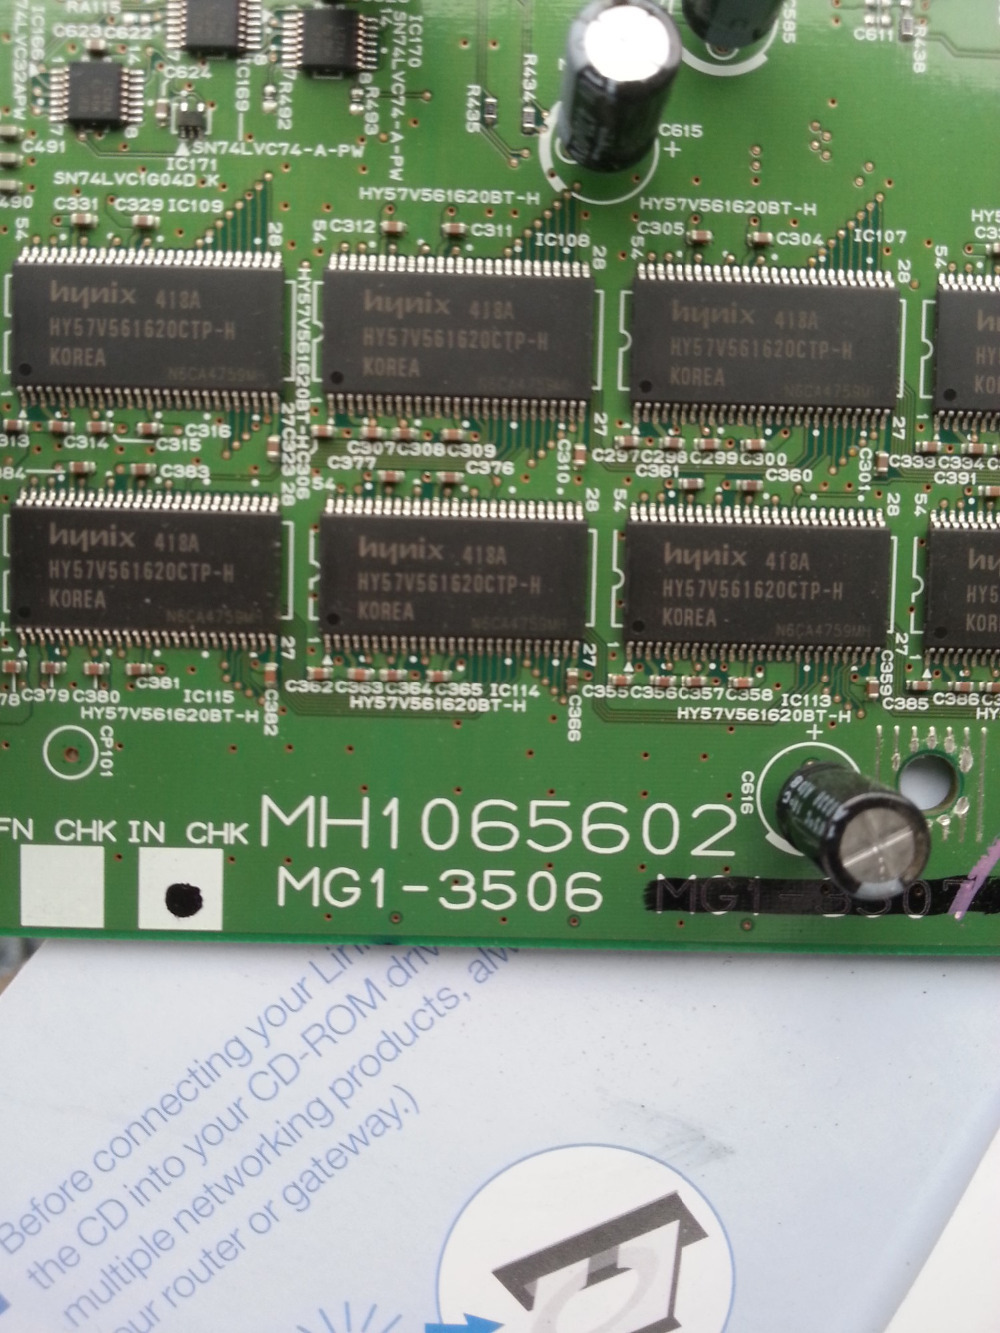 MAINBOARD FOR CANON SCANNER 9080 MG1-3506 MH1065602